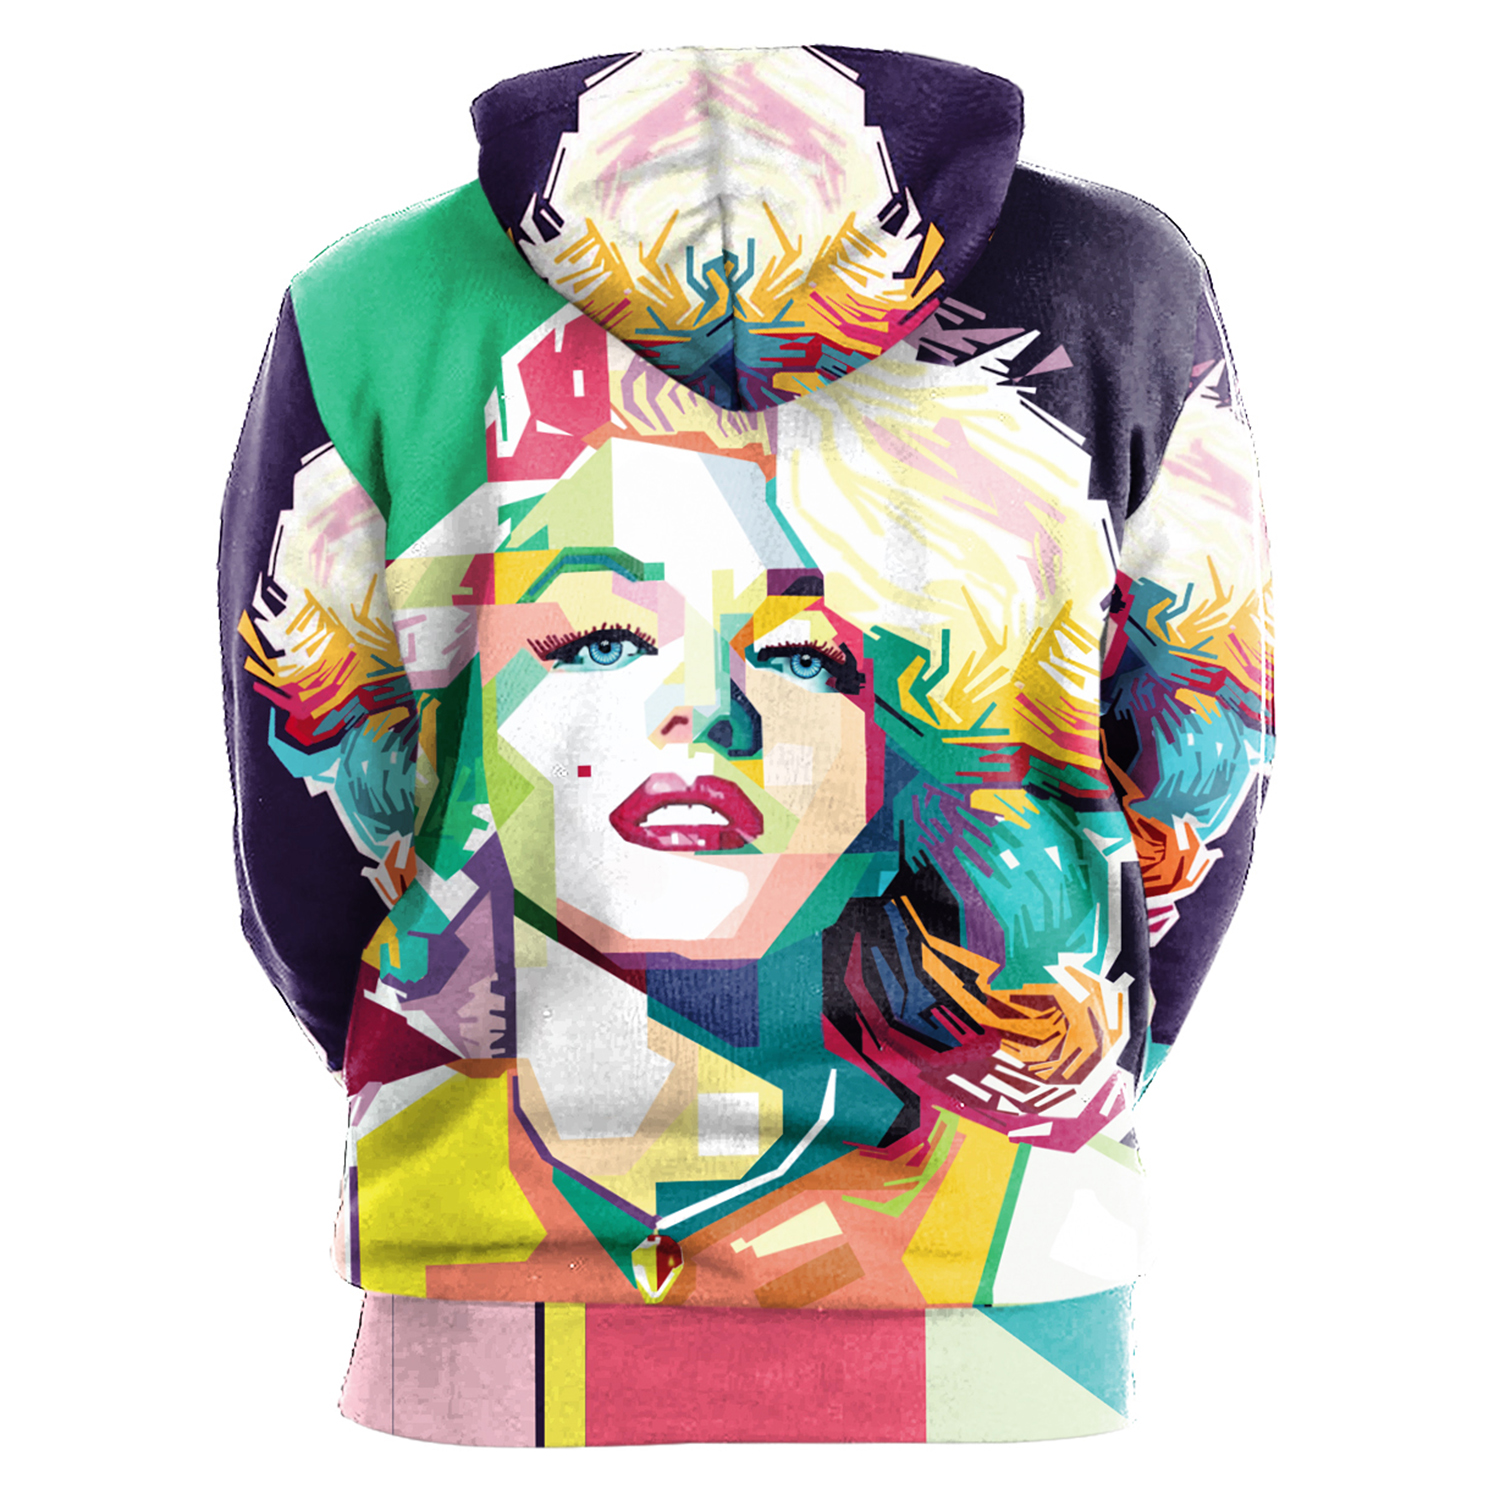 904ade23051fc Marilyn Monroe Hoodie 3D Graphics Printed Pullover - Thumbnail 1 ...